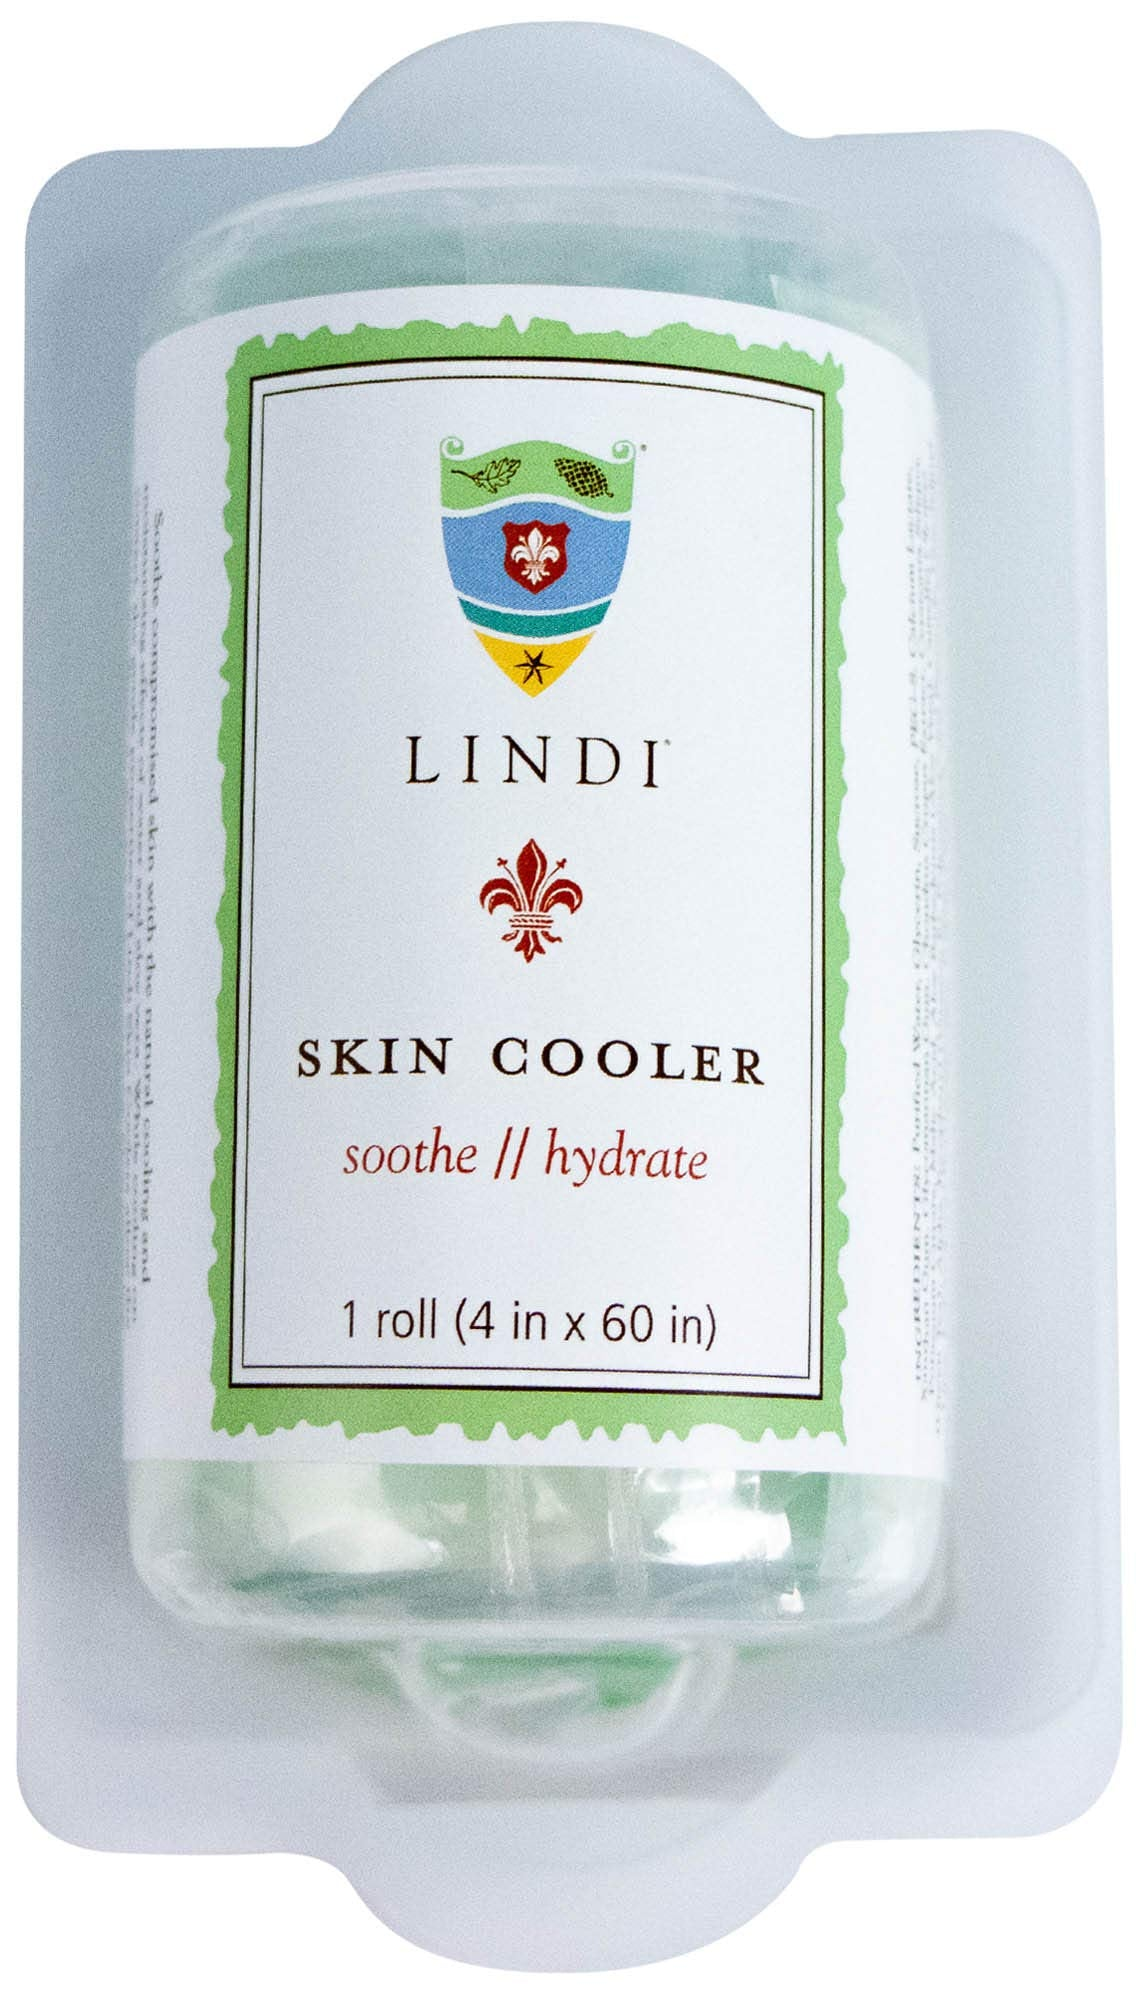 Lindi Skin Cooler Roll